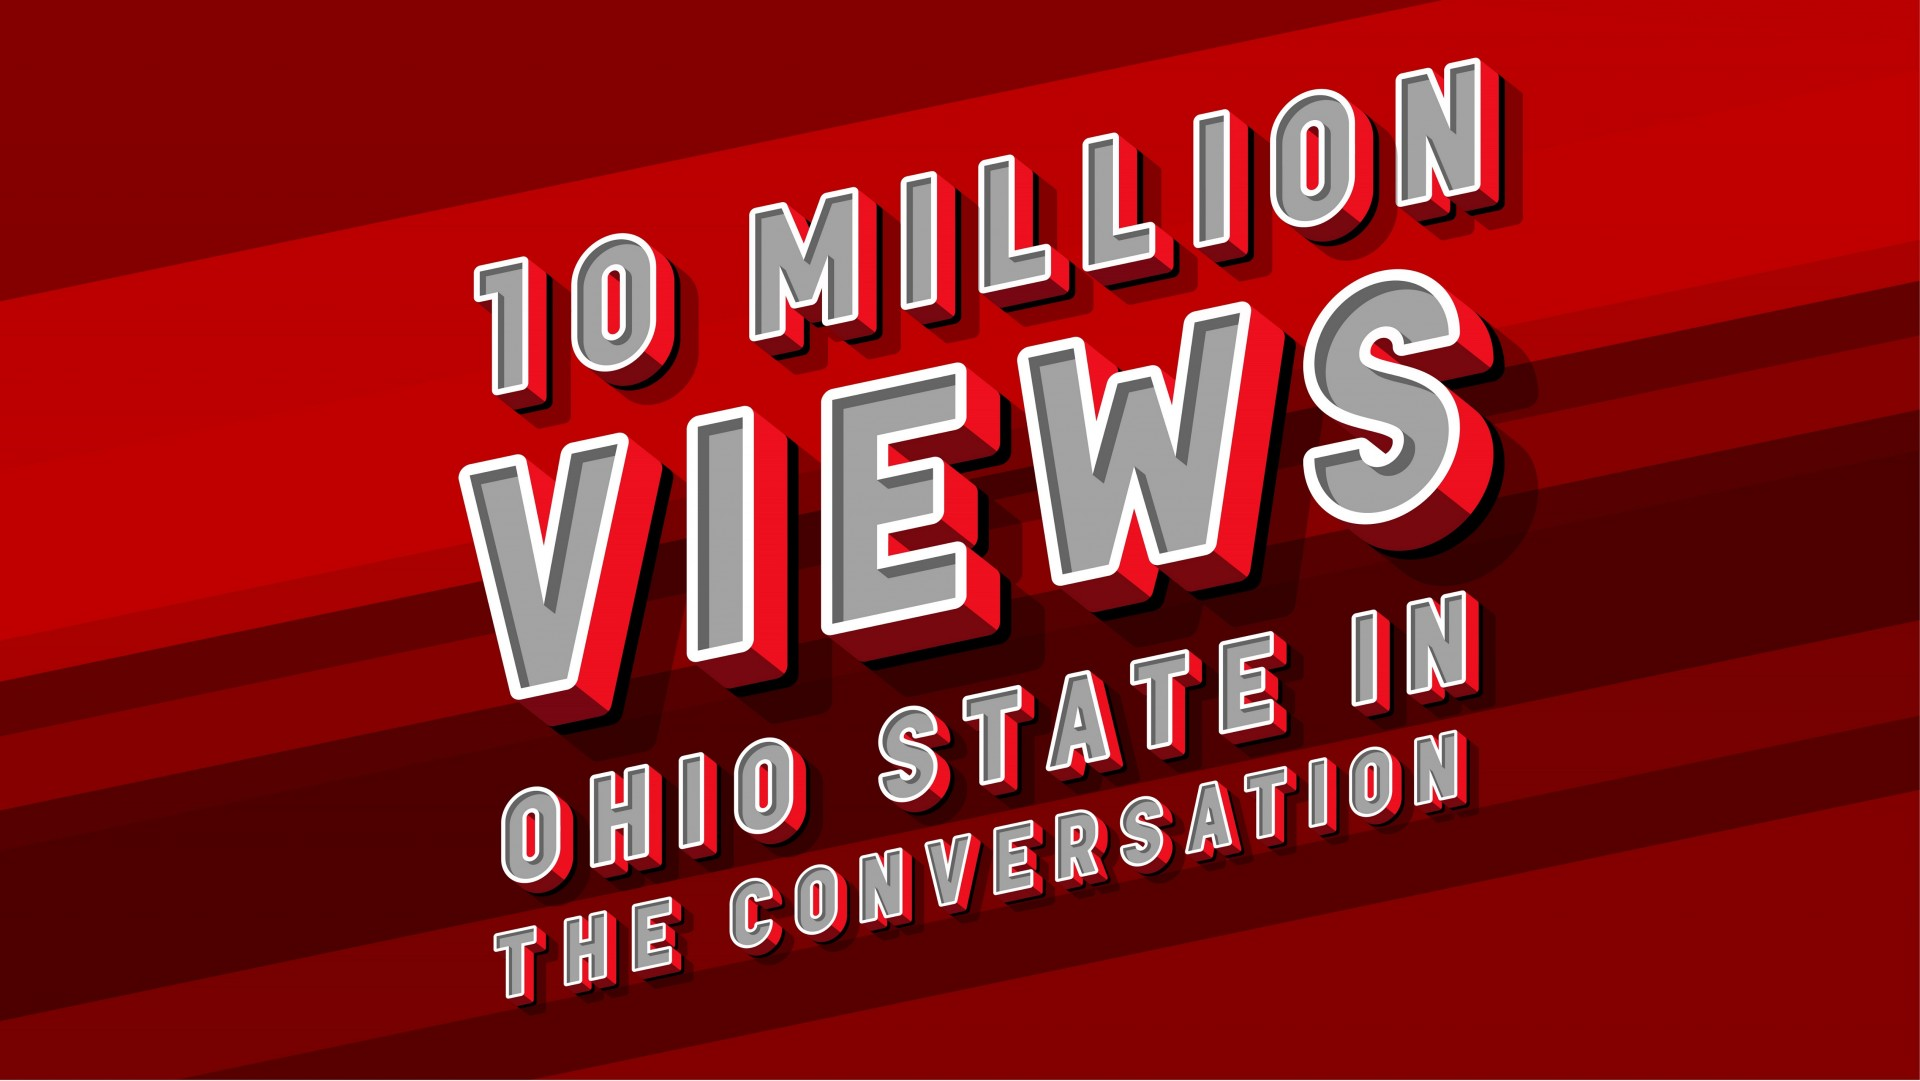 Ohio State researchers have made a big impact by writing for The Conversation.